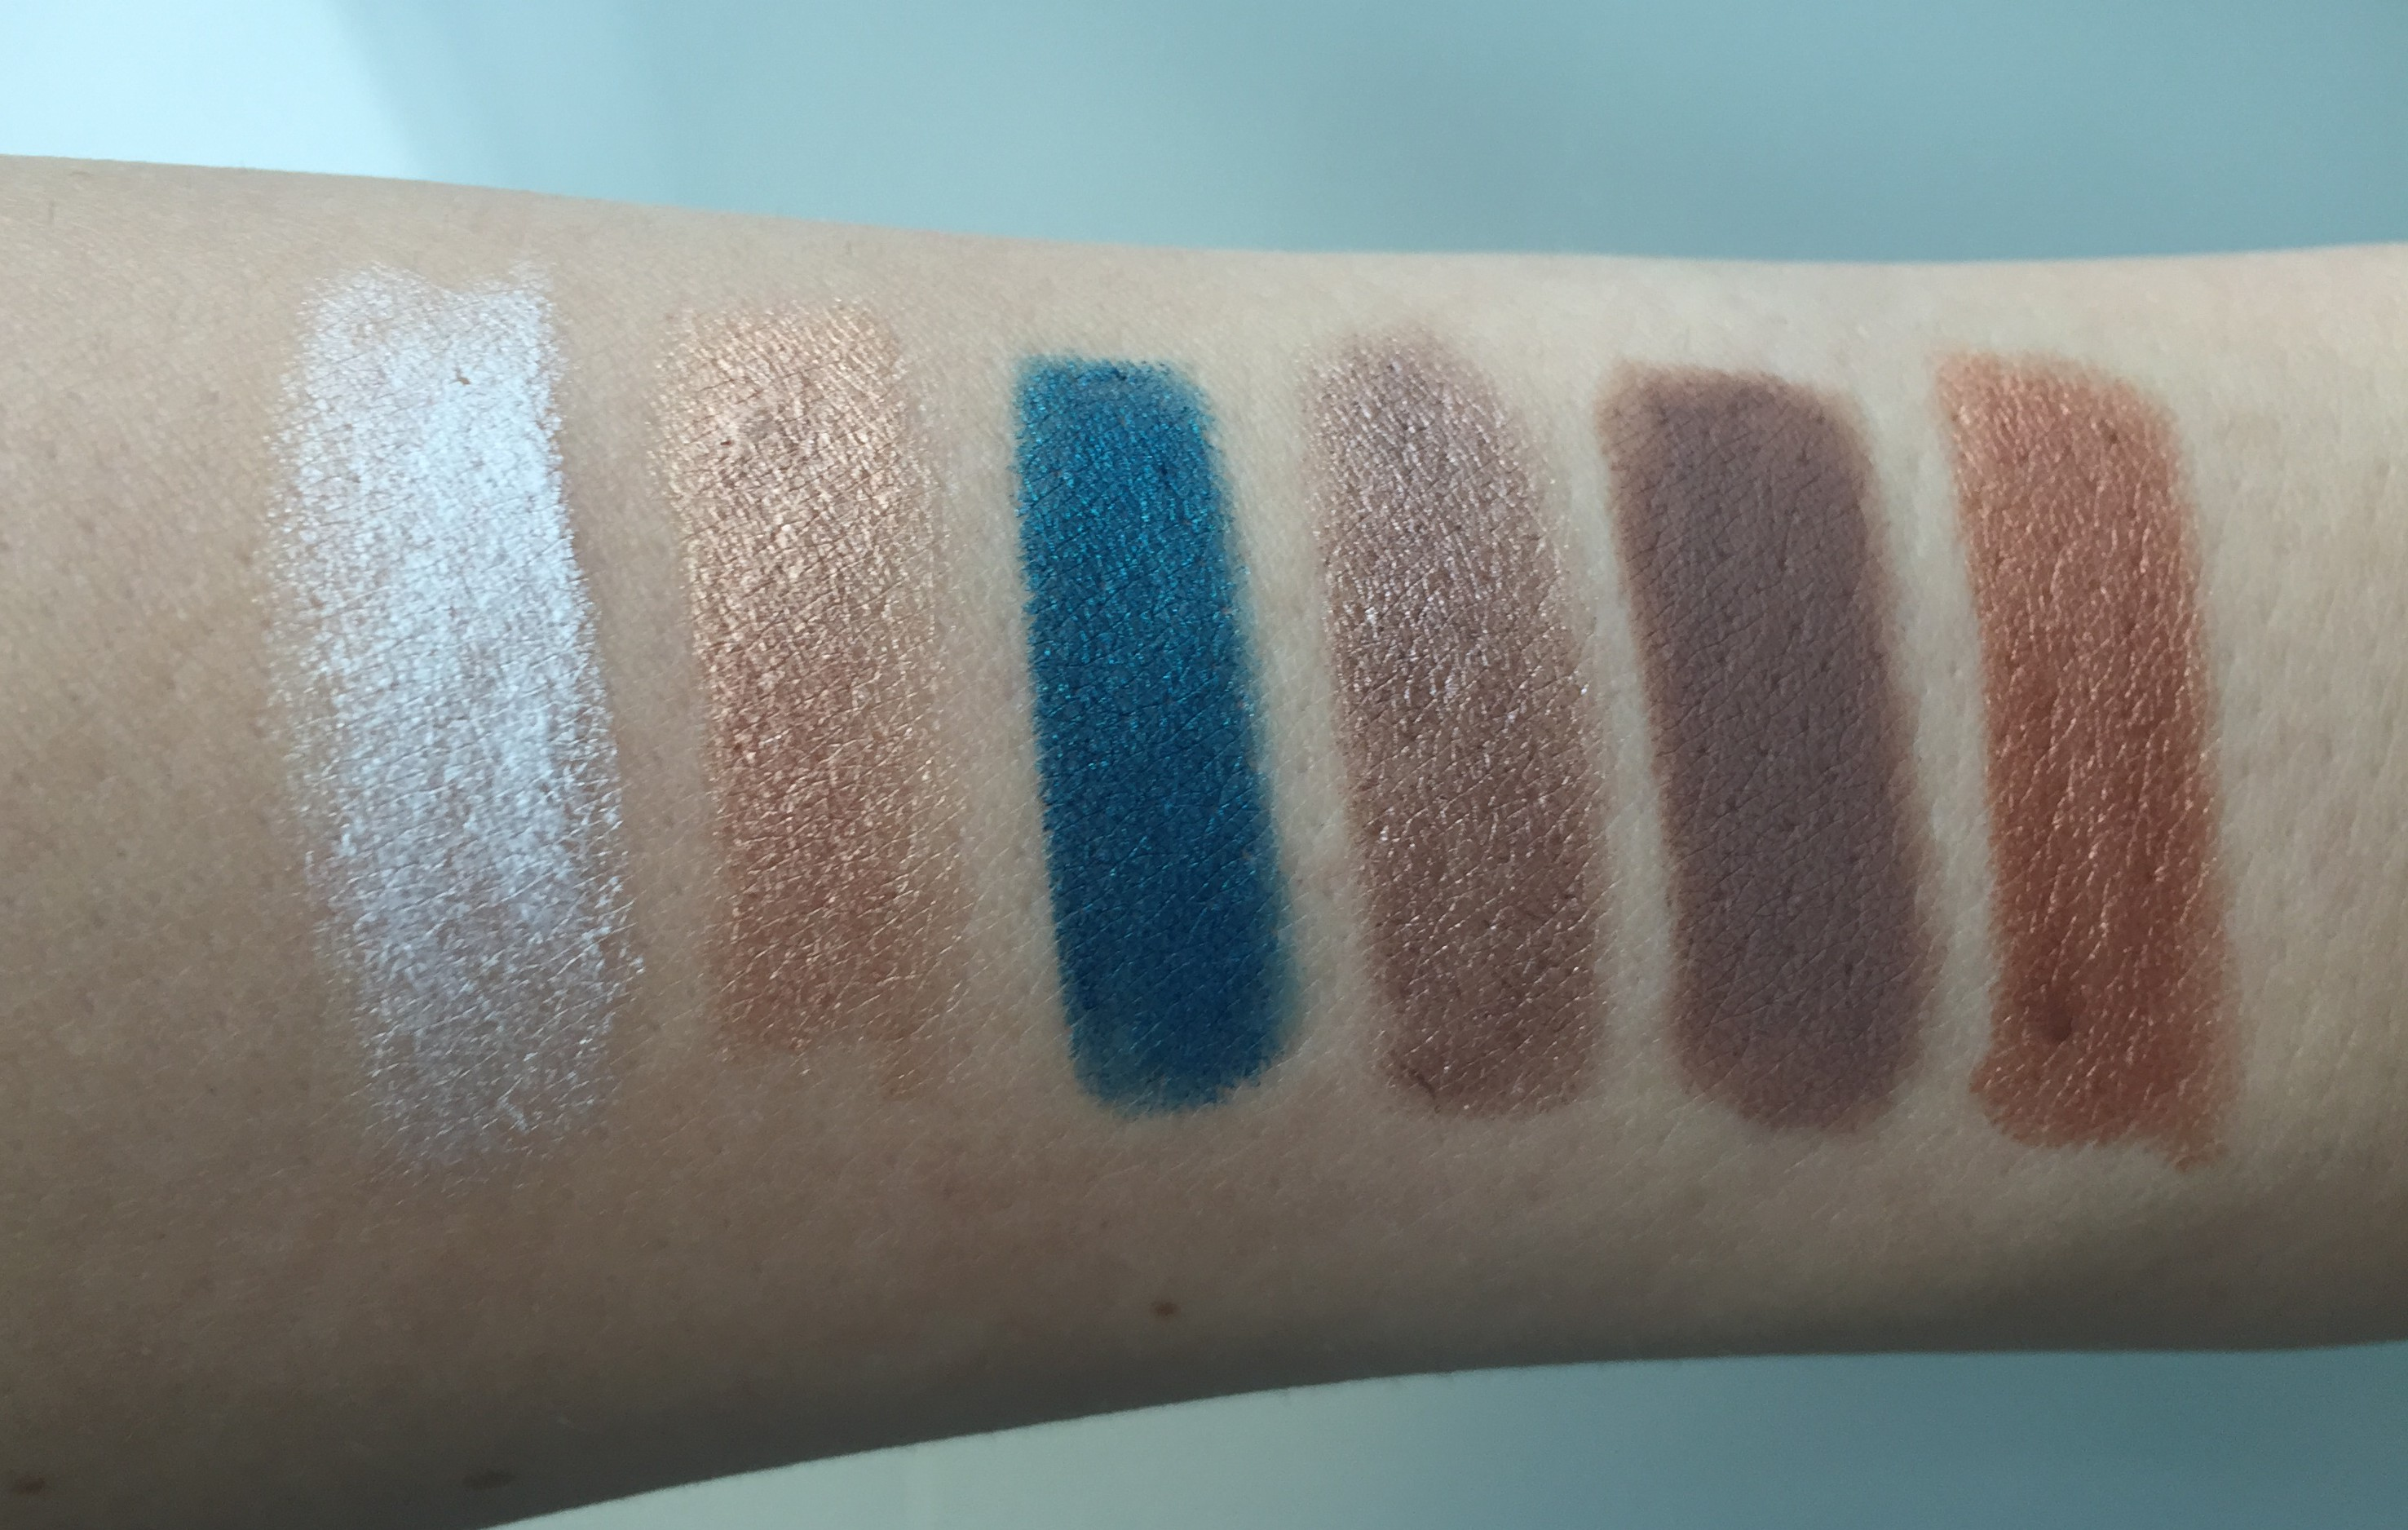 592d89664fc REVIEW: RIMMEL LONDON SCANDALEYES EYESHADOW STICK / YORUM: RIMMEL ...